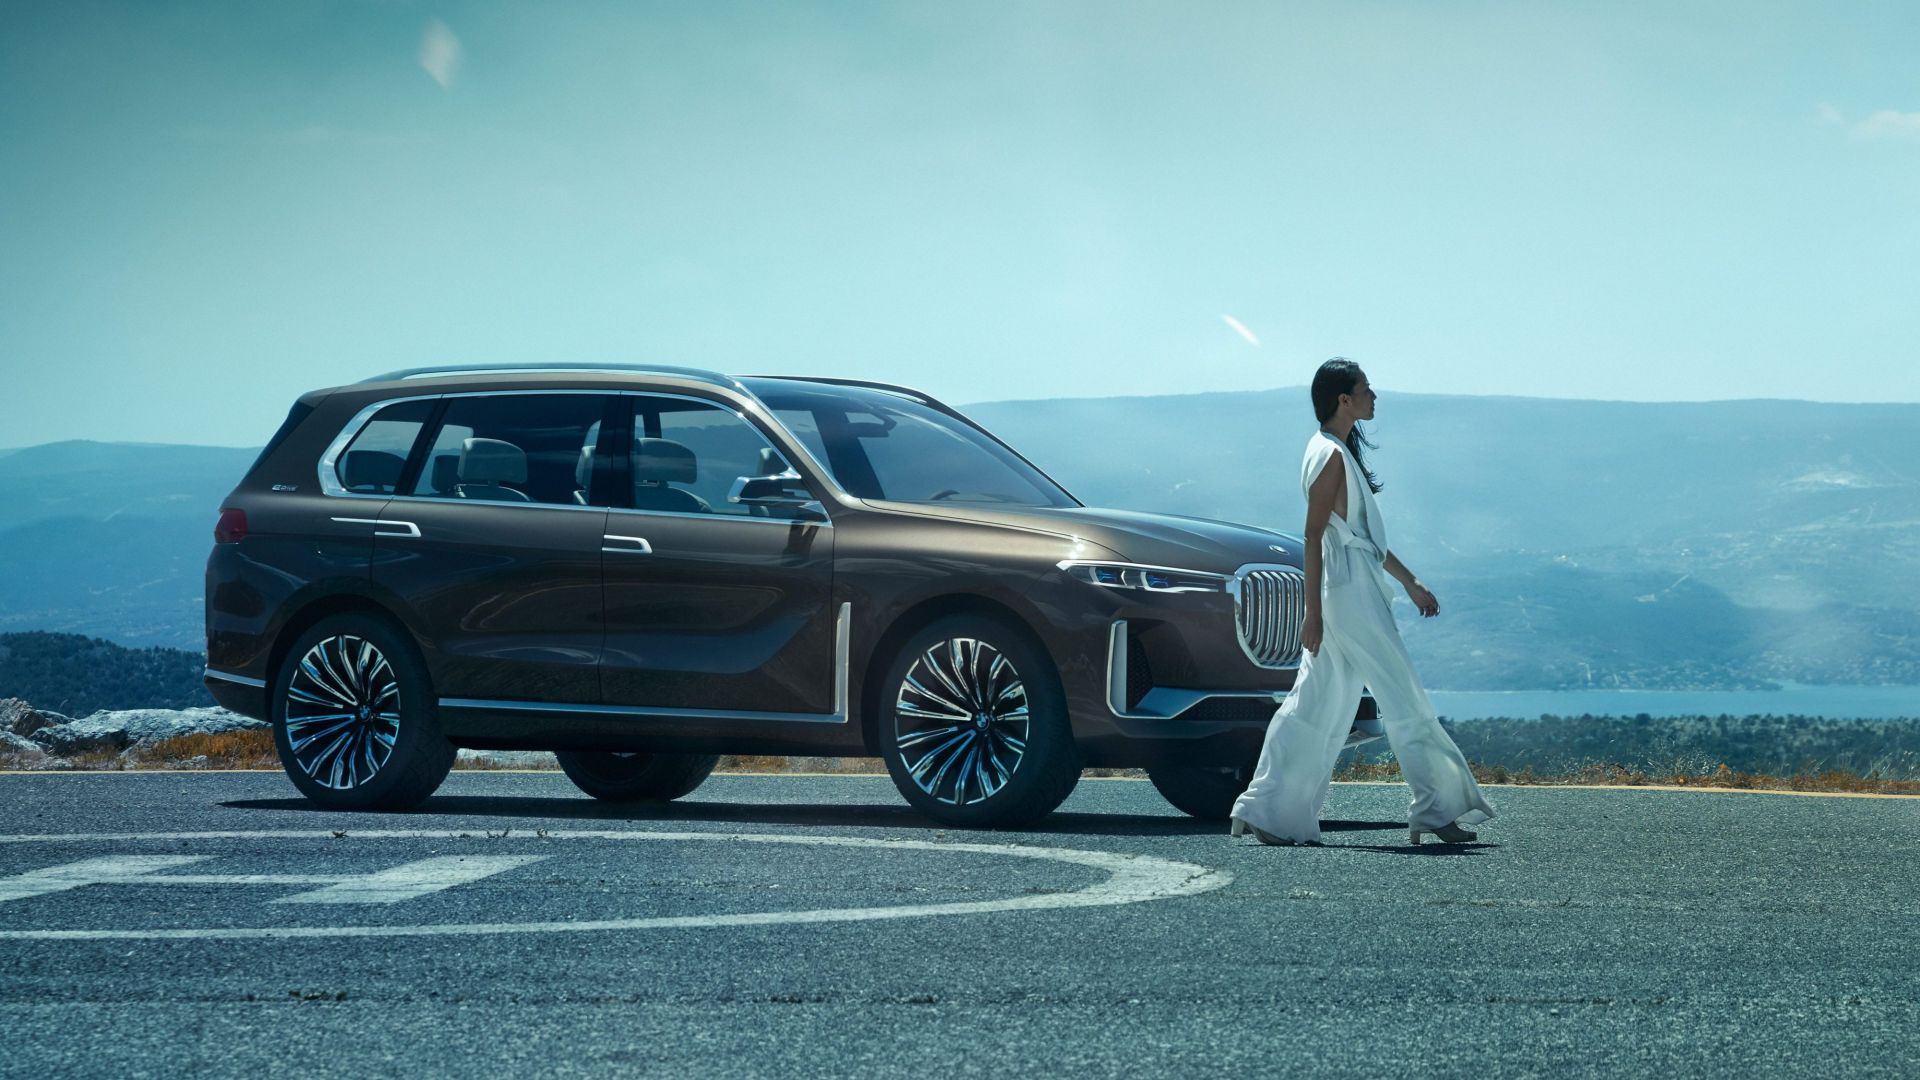 BMW X7, SUV, 2019 Cars, 5K (horizontal)